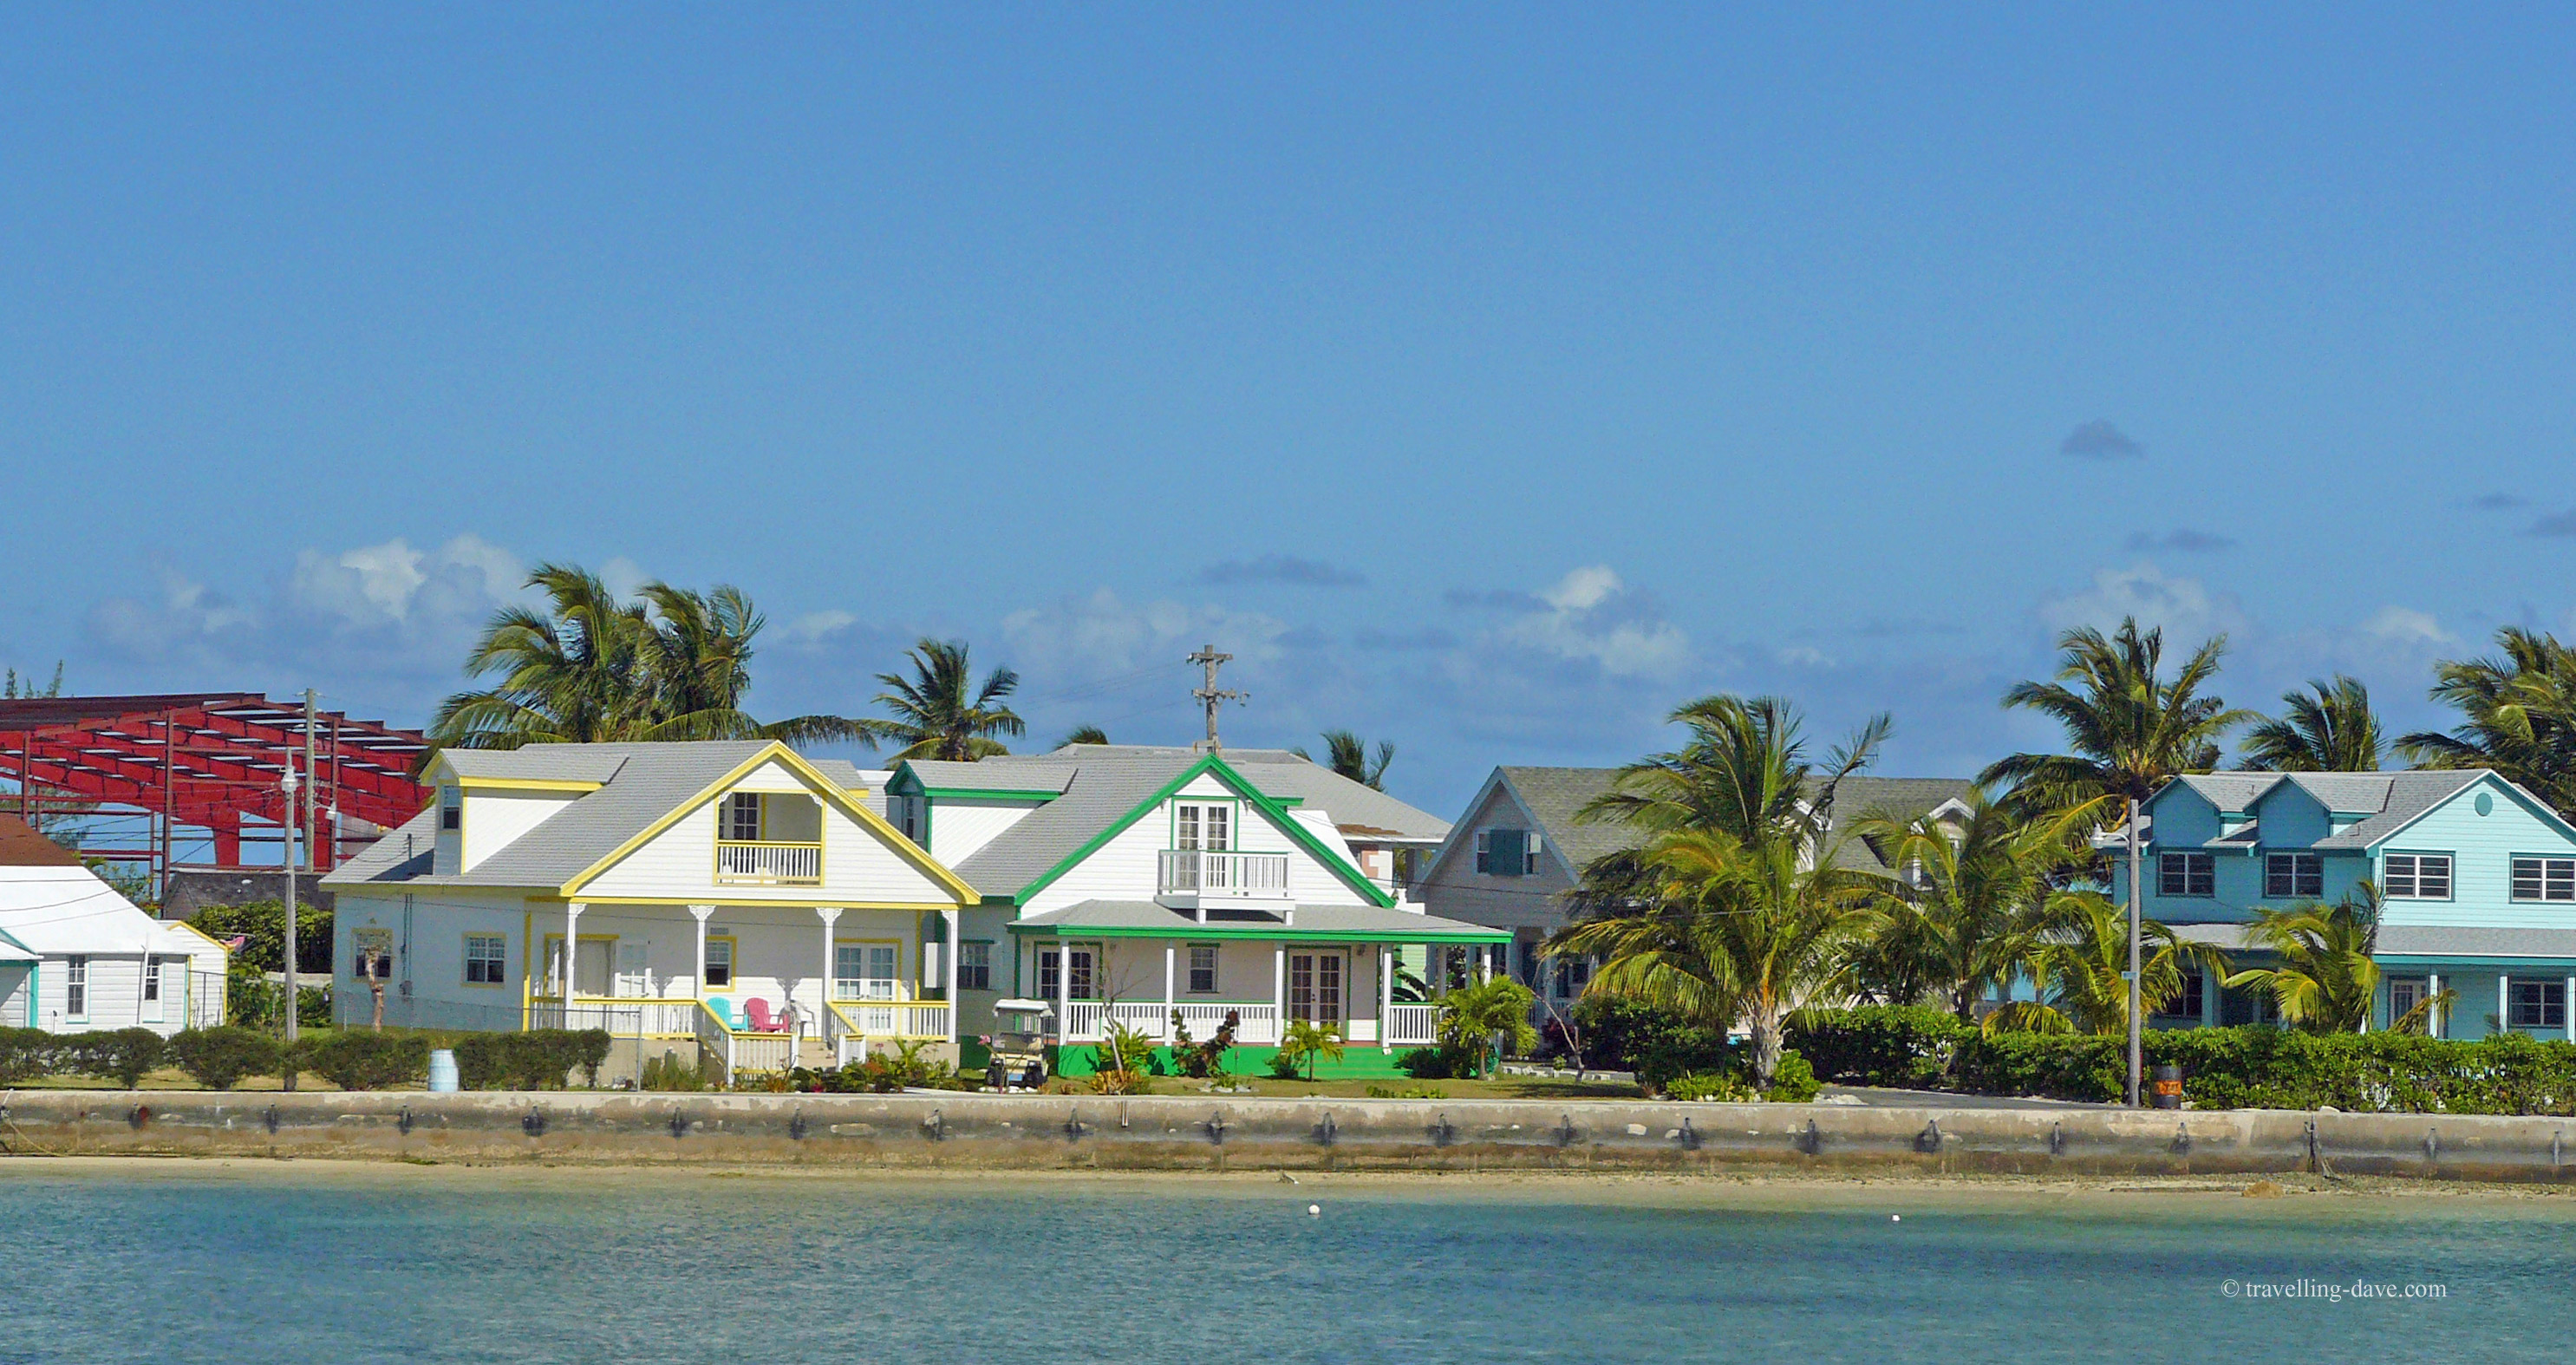 View from the ferry of Spanish Wells in the Bahamas